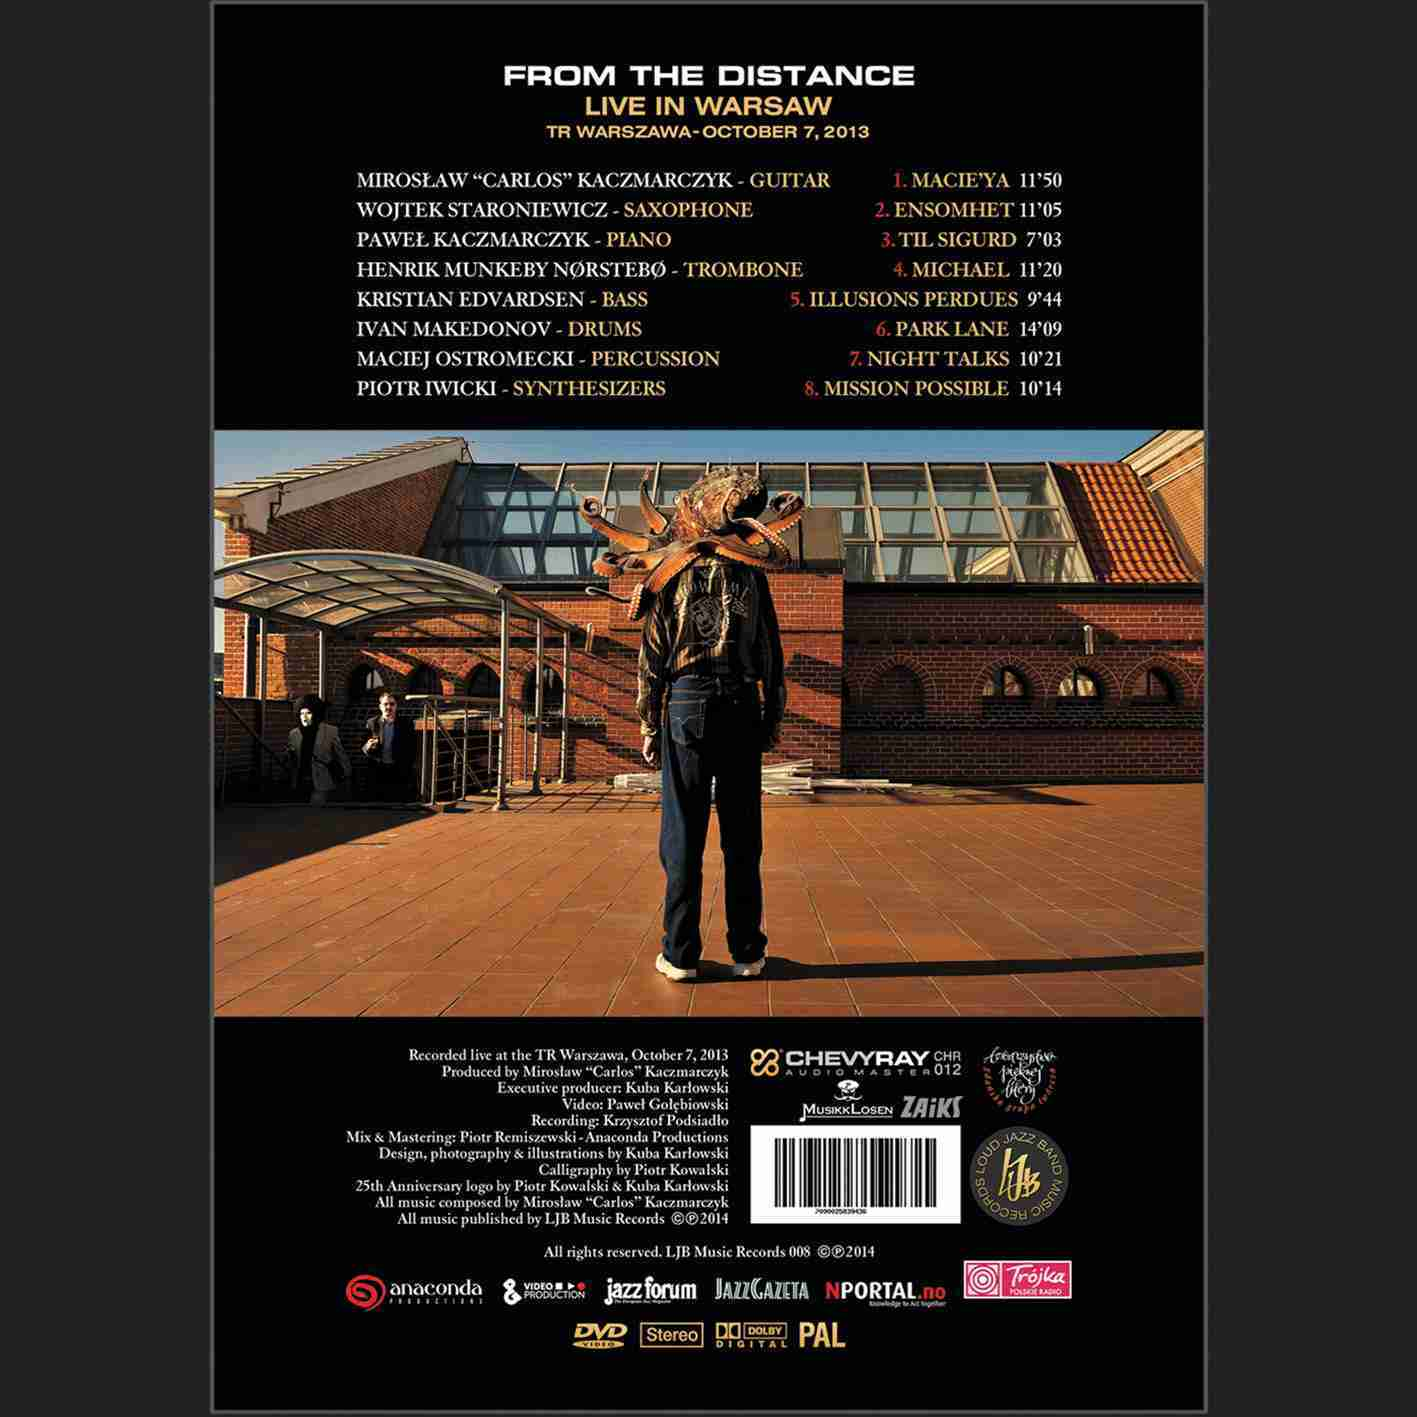 From the Distance Live in Warsaw back cover